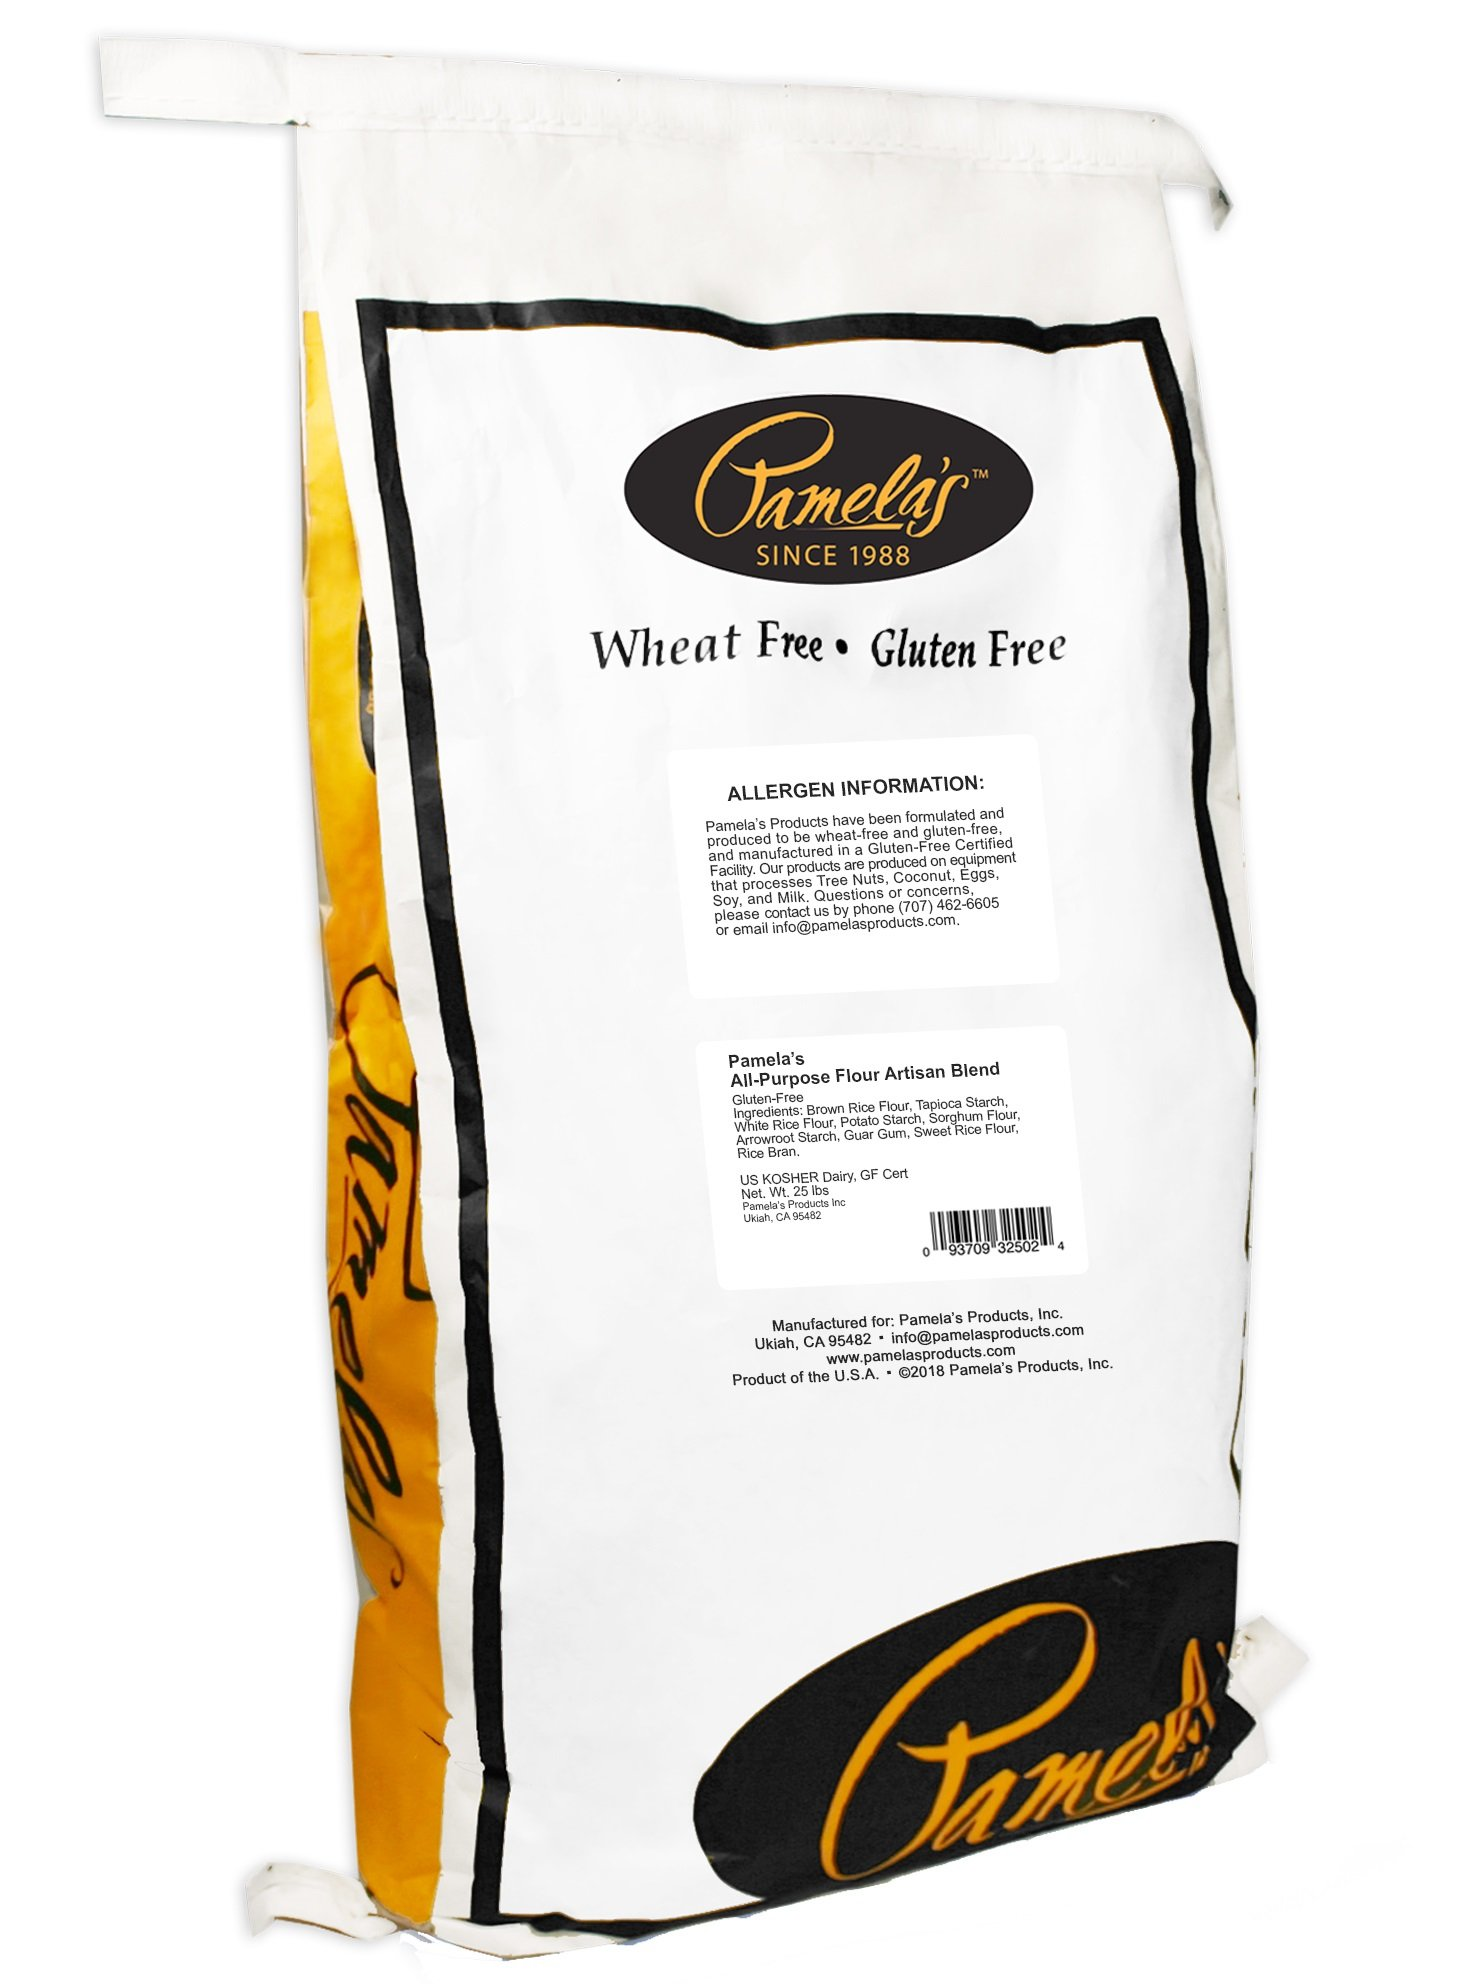 Pamela's Products Gluten Free All Purpose Flour Blend, 25 Pound by Pamela's Products